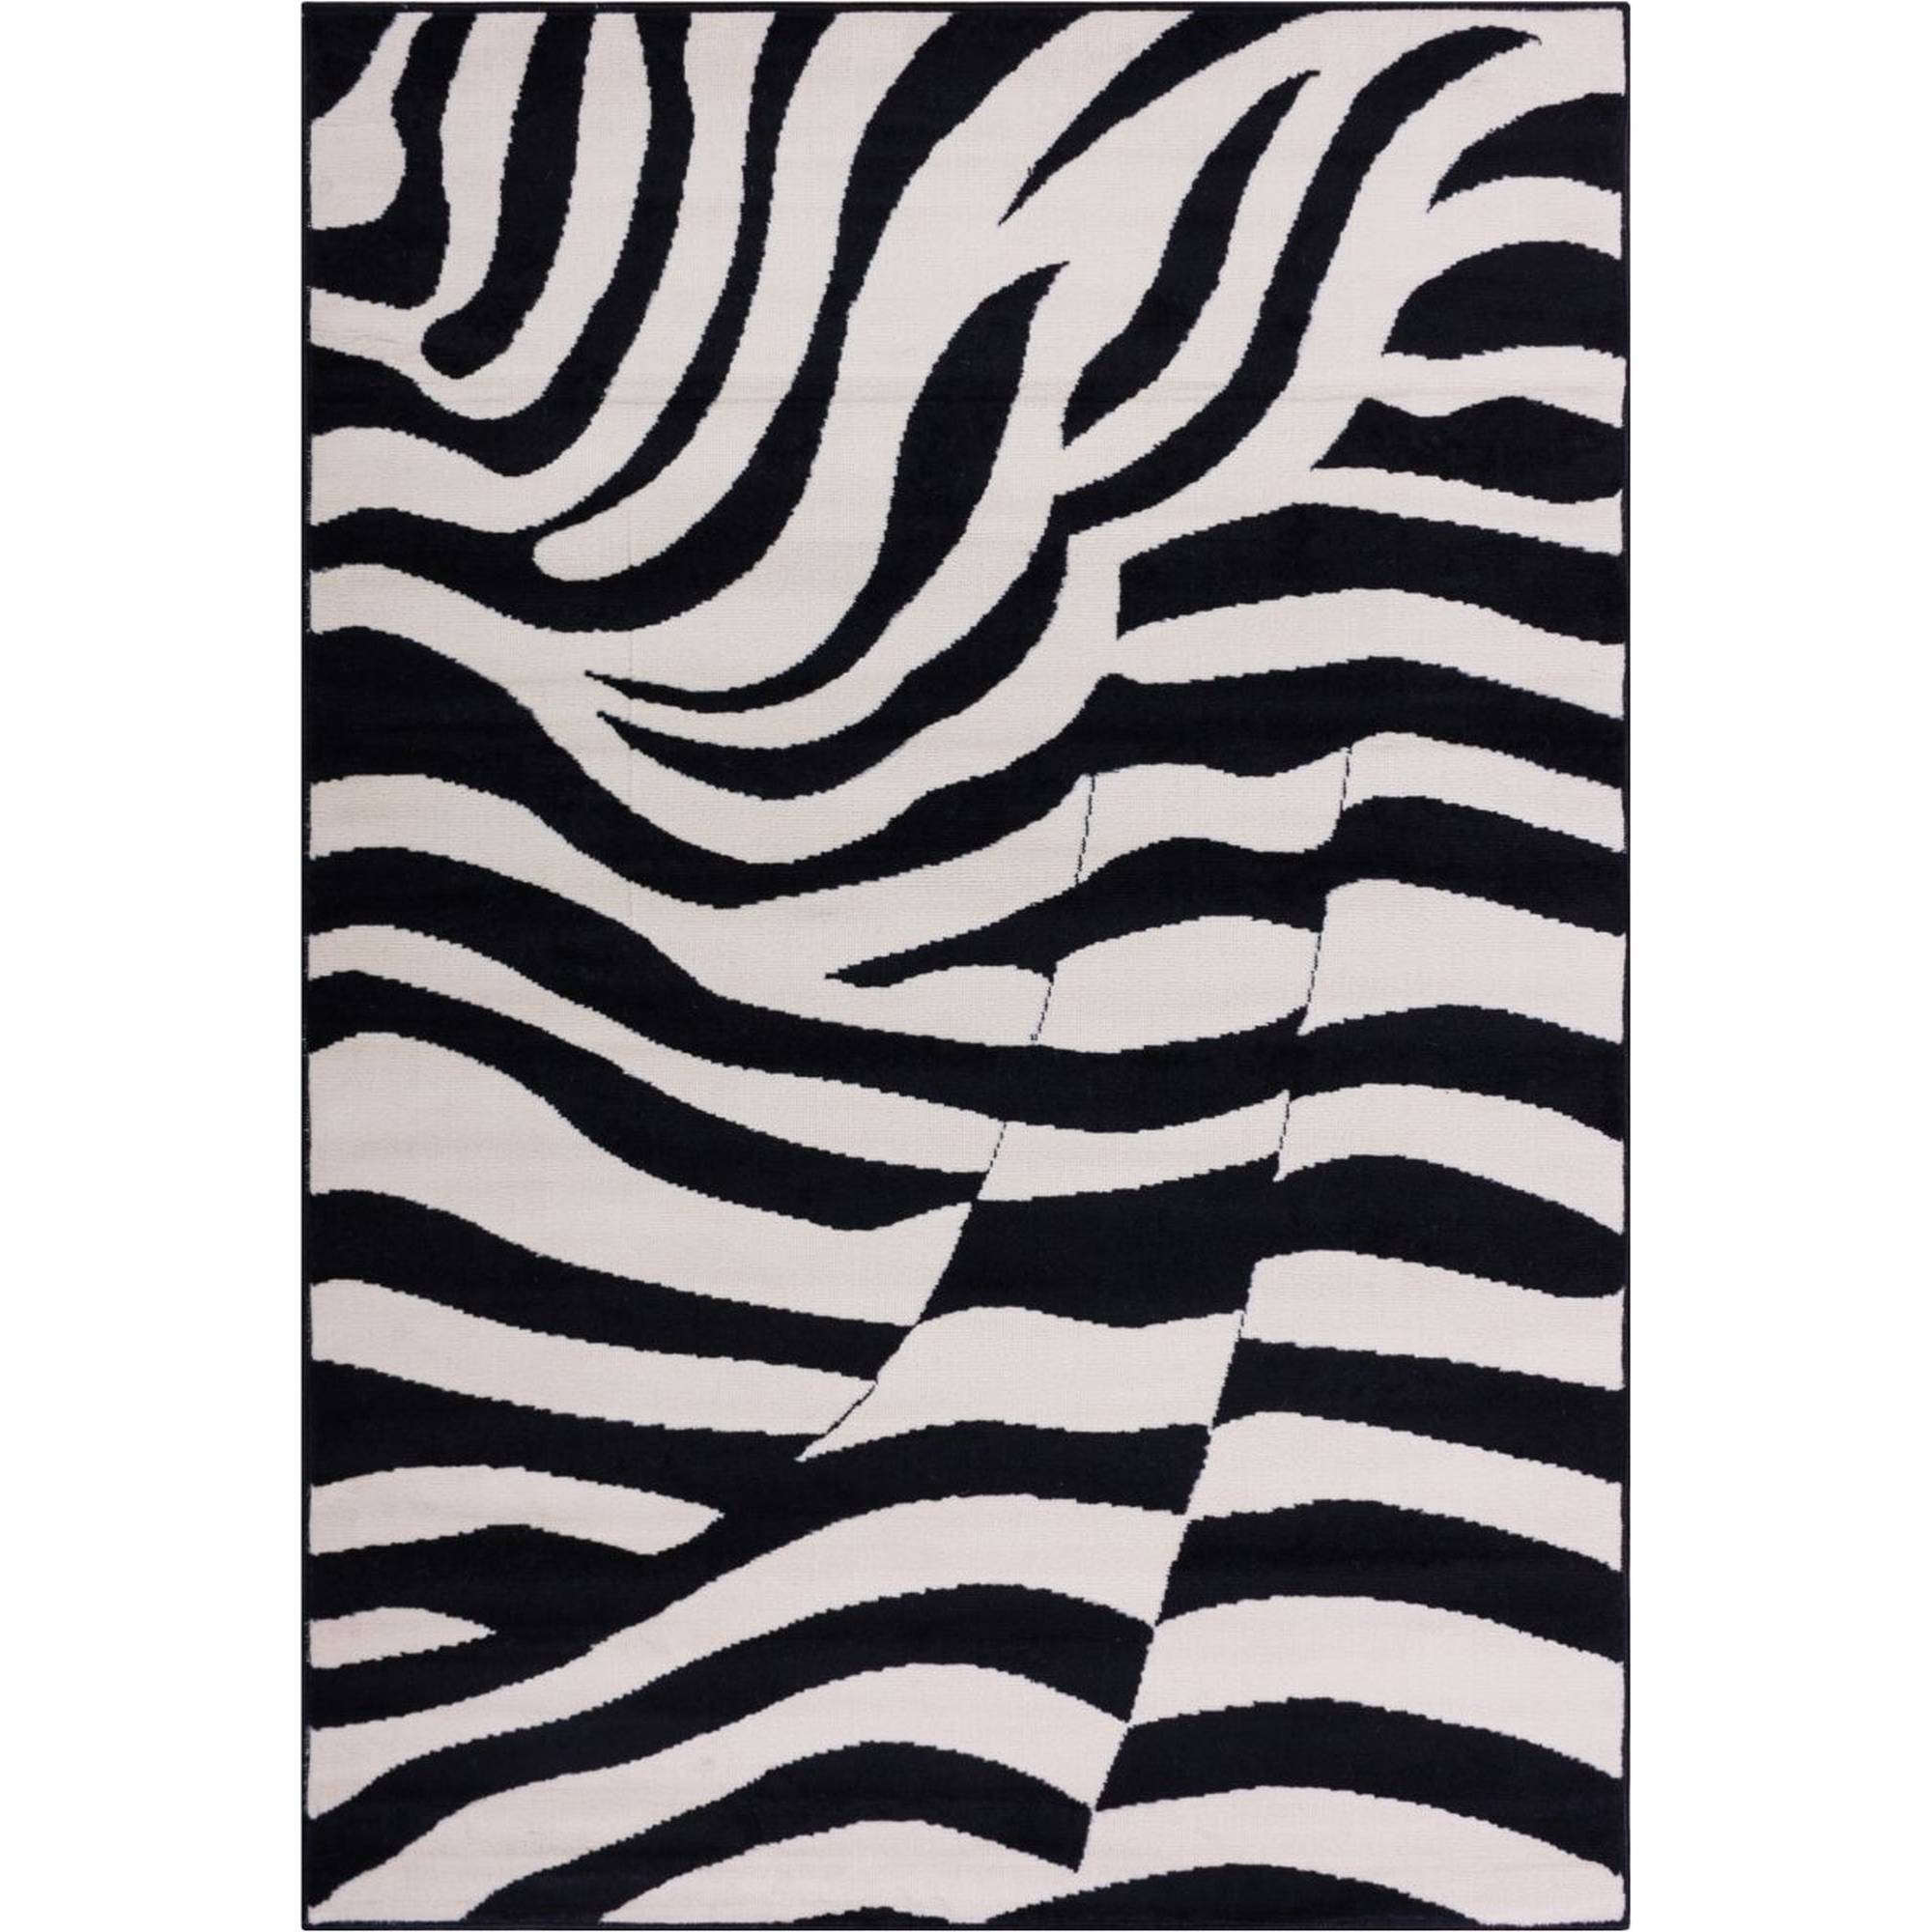 "Zesty Zebra Black 8x10 ( 8'2"" x 9'10"" ) Casual Animal Print Thin Value Area Rug Perfect for Living Room Dining Room Family Room Greatroom"